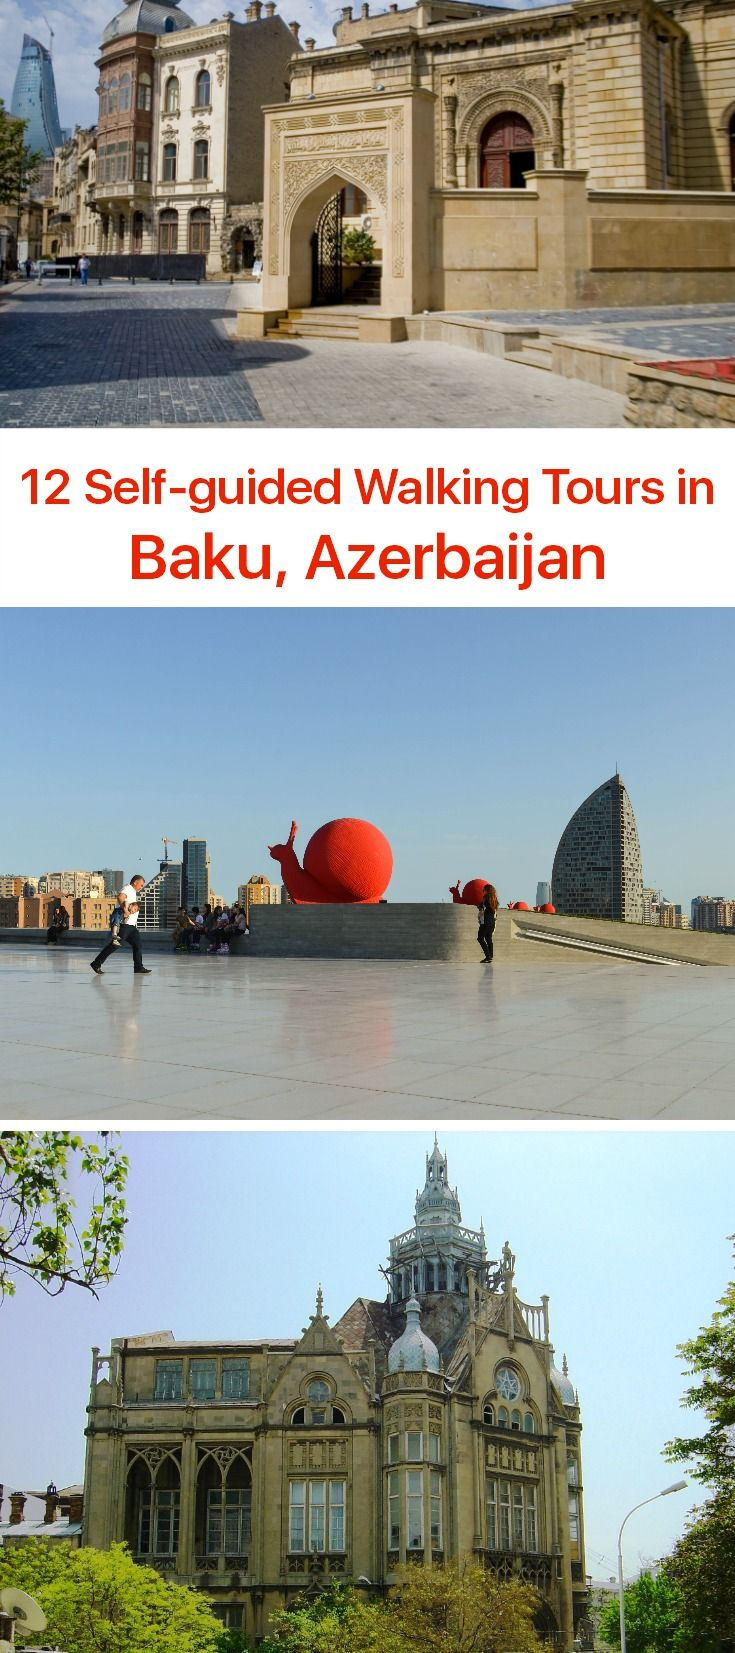 "Otherwise known as the ""City of Winds"", the capital of Azerbaijan Baku lies 28 meters below sea level. Baku is the largest and fastest developing city in the Caspian and Caucuses regions. The city's skyline is dominated by ultra-modern buildings emerged in recent decades."